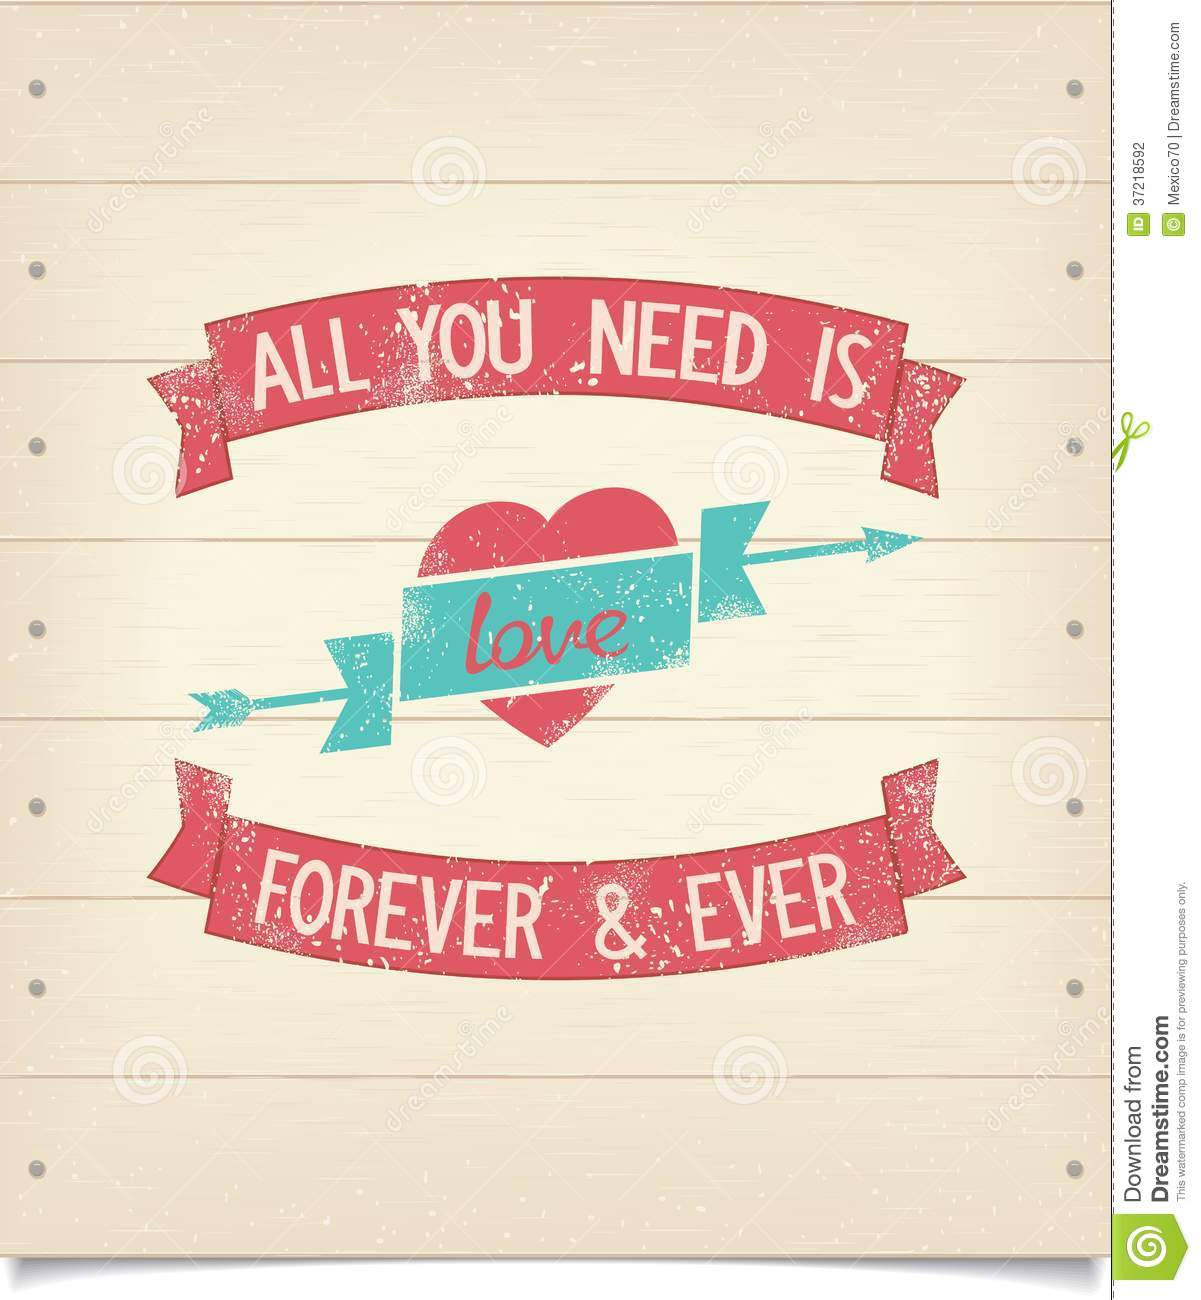 All You Need Is Love Phrase On Wood Signboard Stock Vector